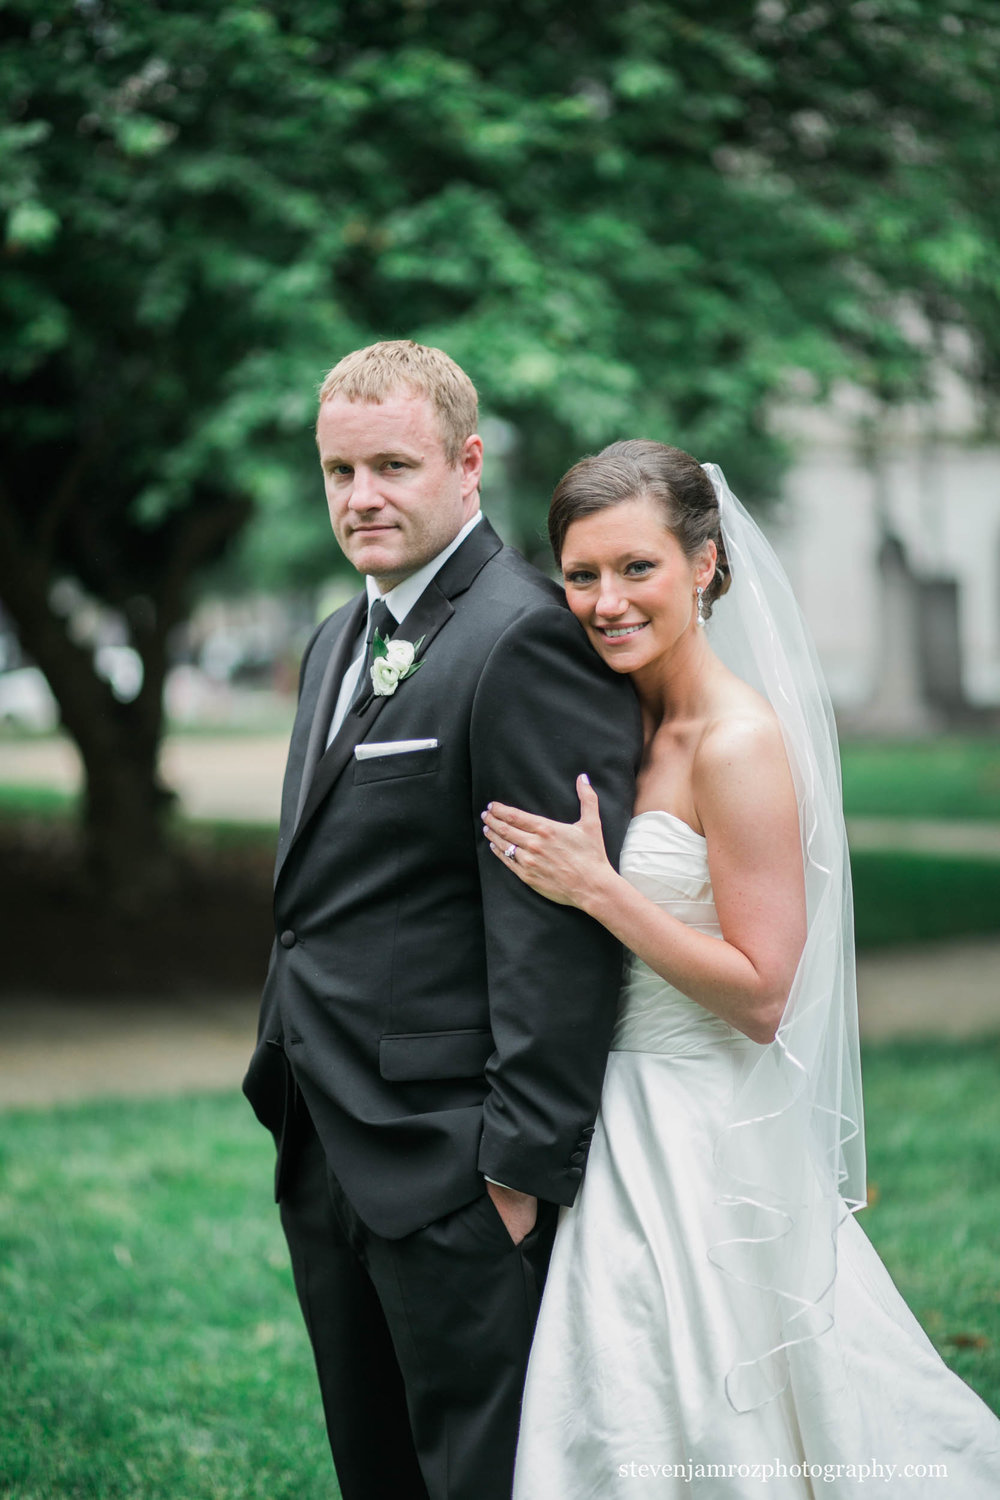 state-capital-raleigh-nc-wedding-steven-jamroz-photography-0465.jpg